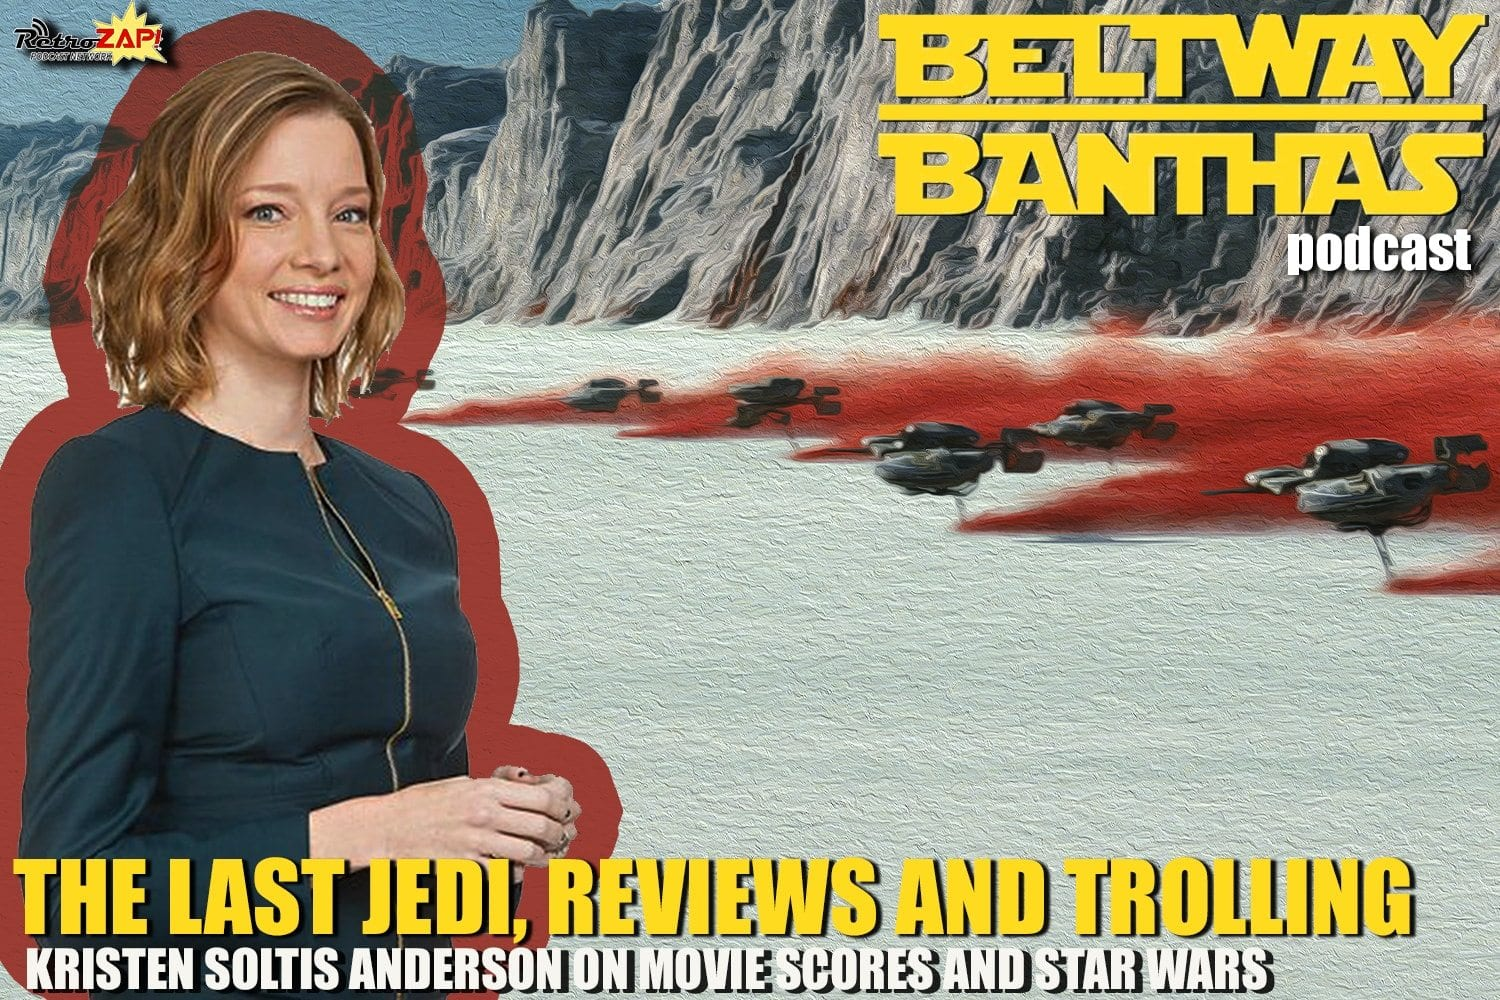 Beltway Banthas: Kristen Soltis Anderson on The Last Jedi, Reviews & Trolling + CPAC